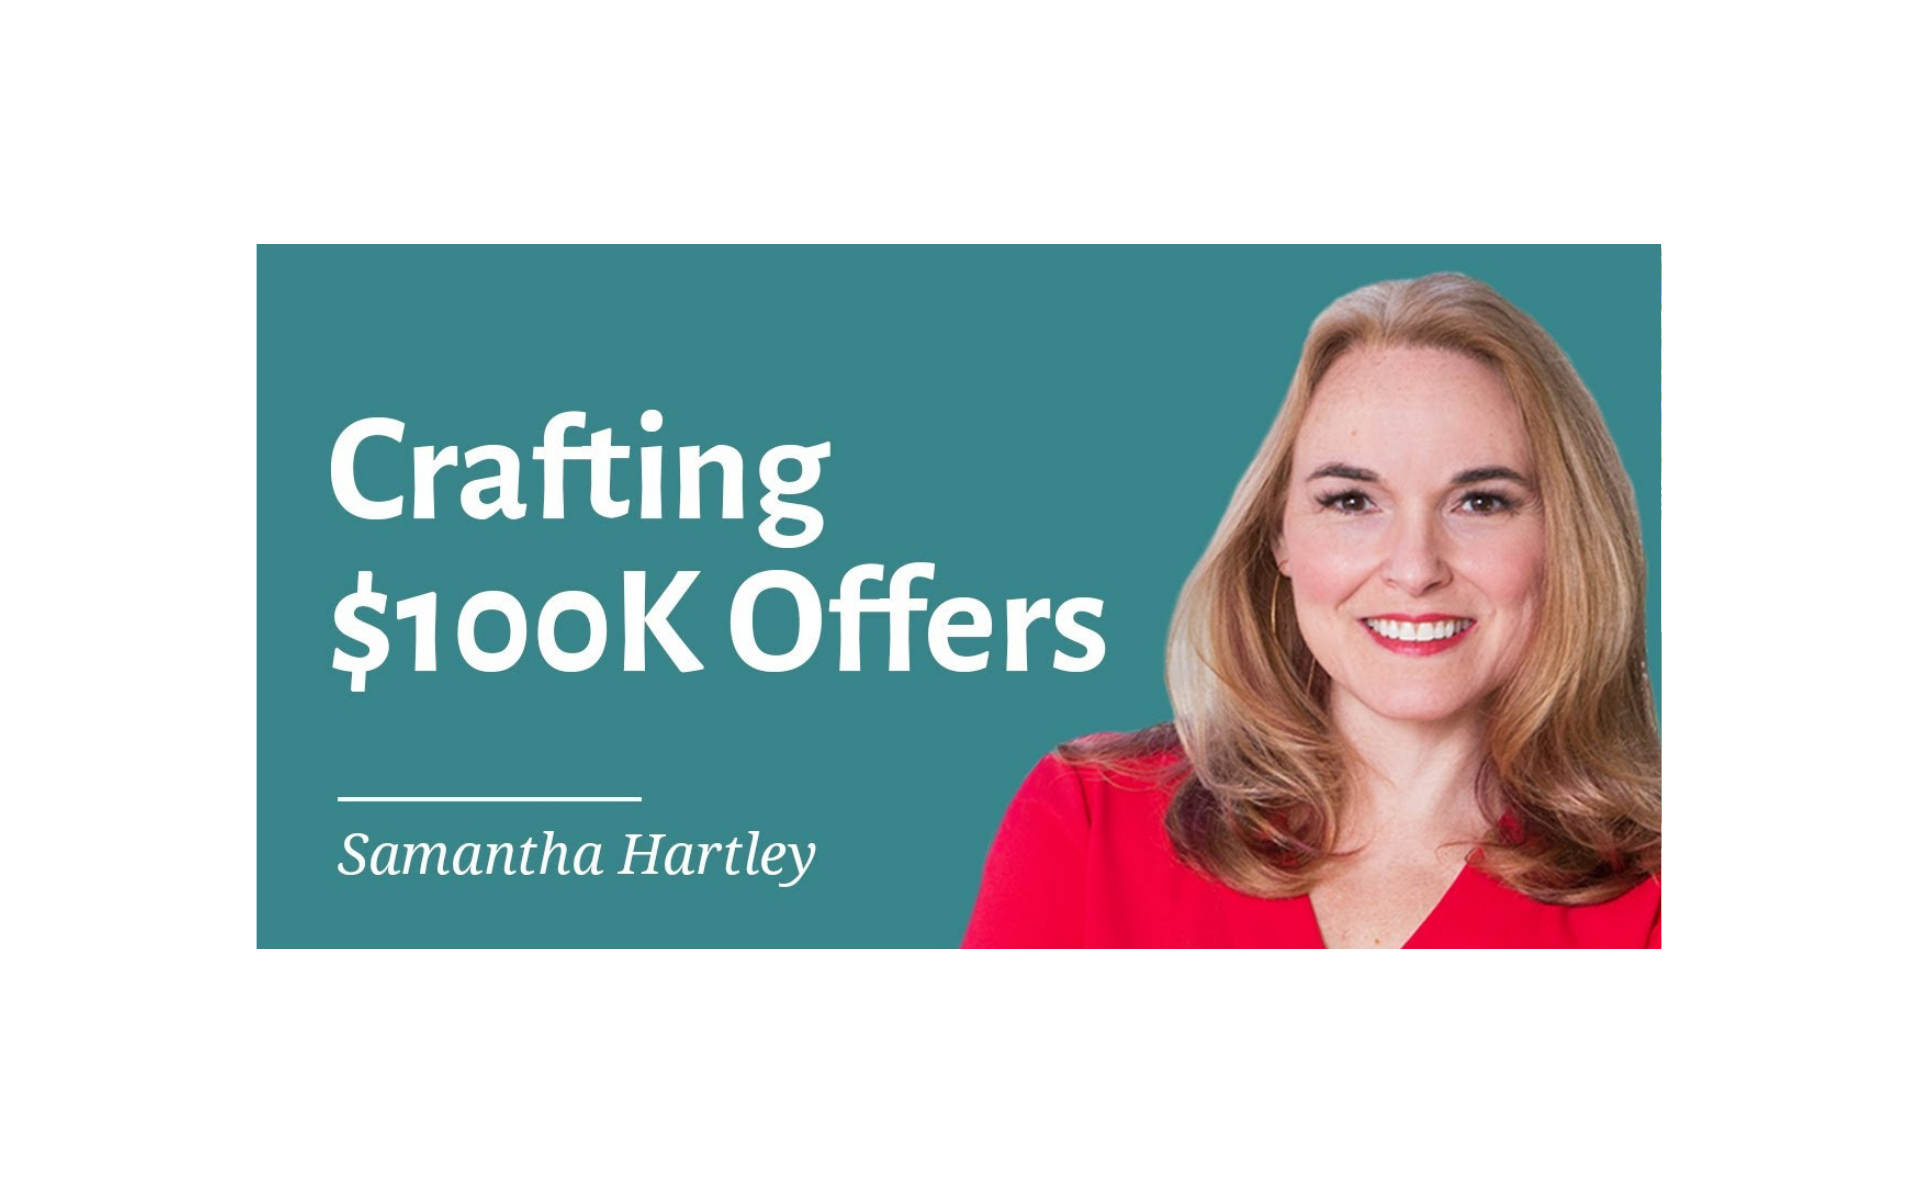 Crafting 100k Offers